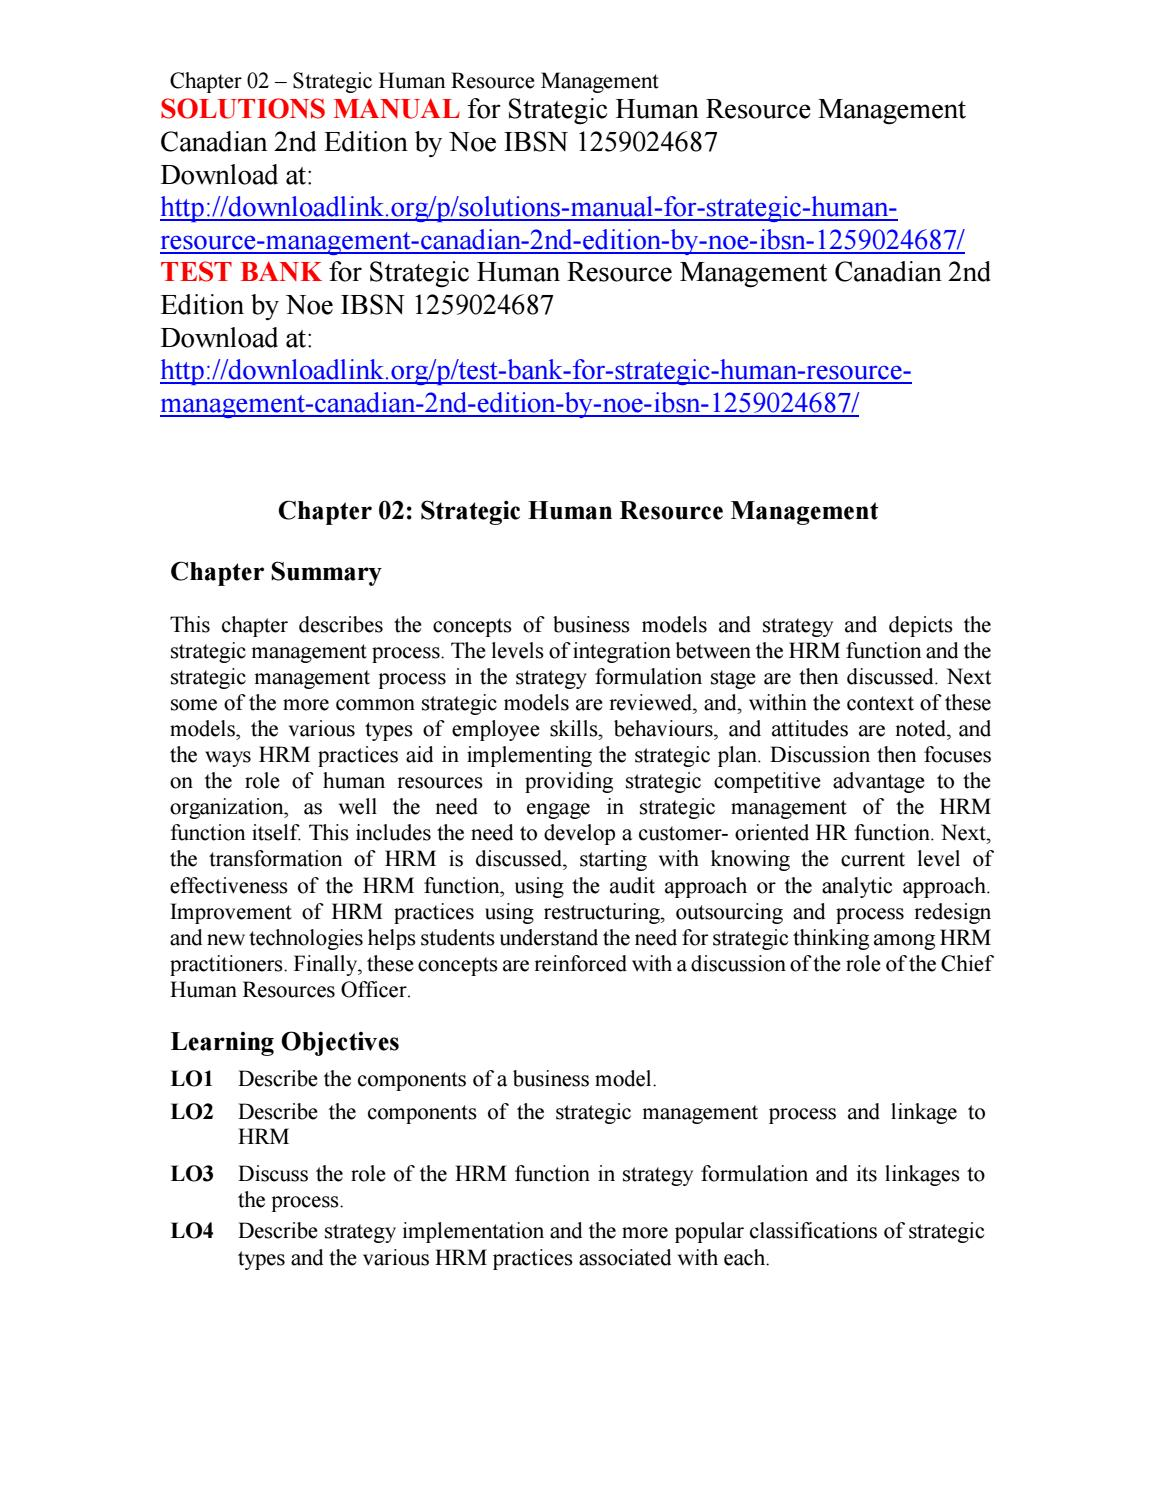 Solutions Manual for Strategic Human Resource Management